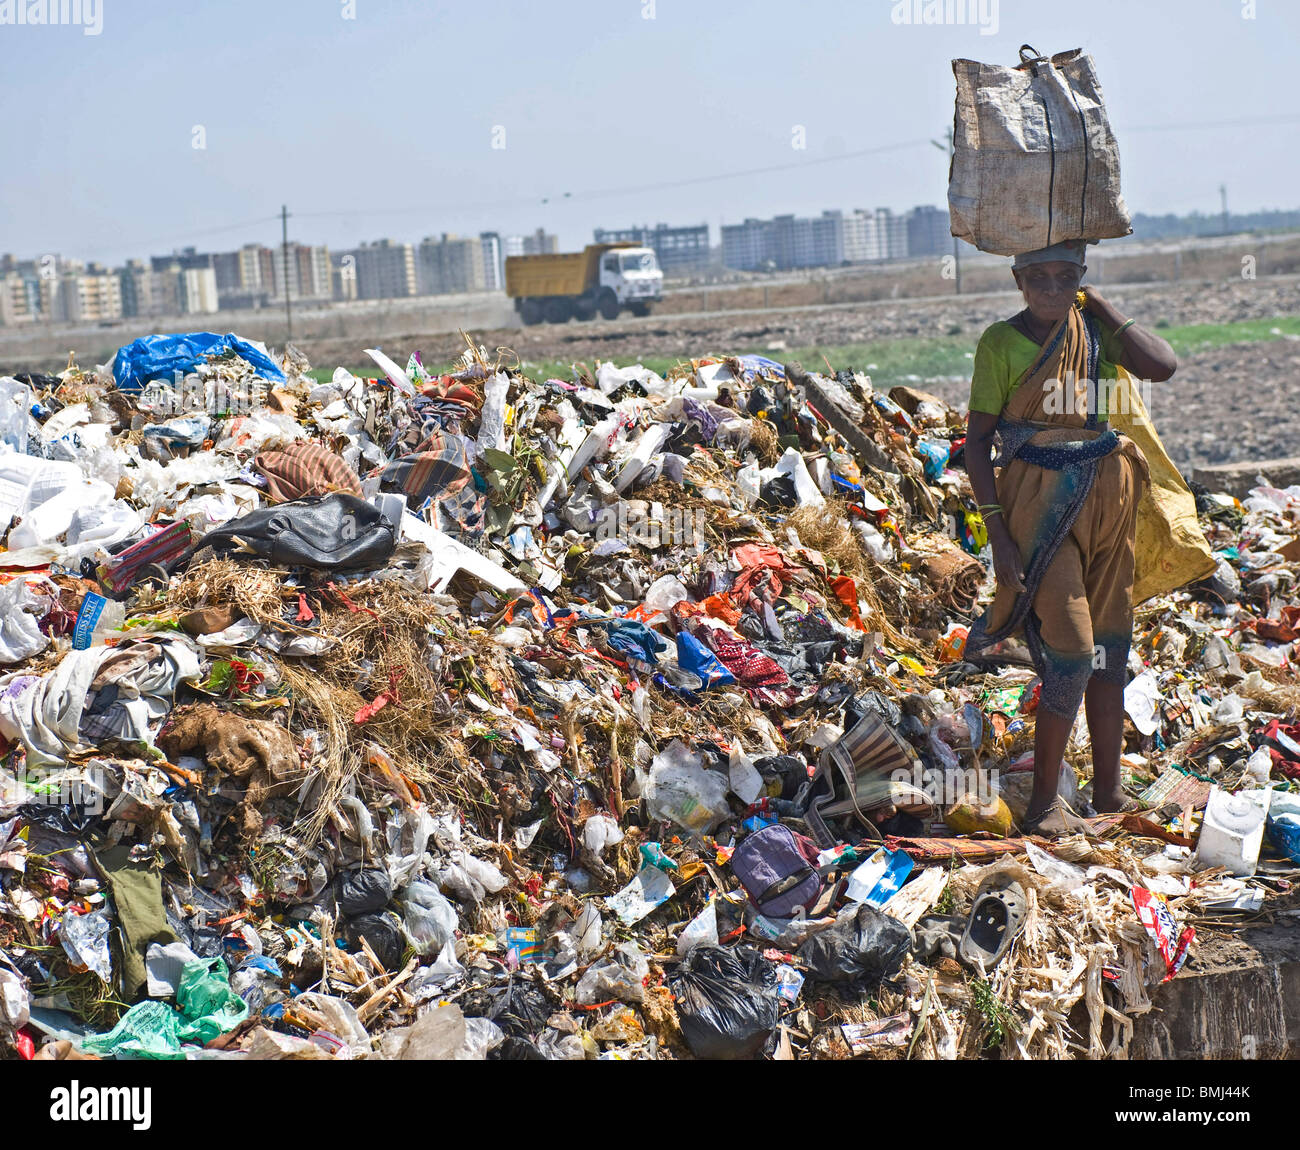 Plastic Recycling India Stock Photos & Plastic Recycling